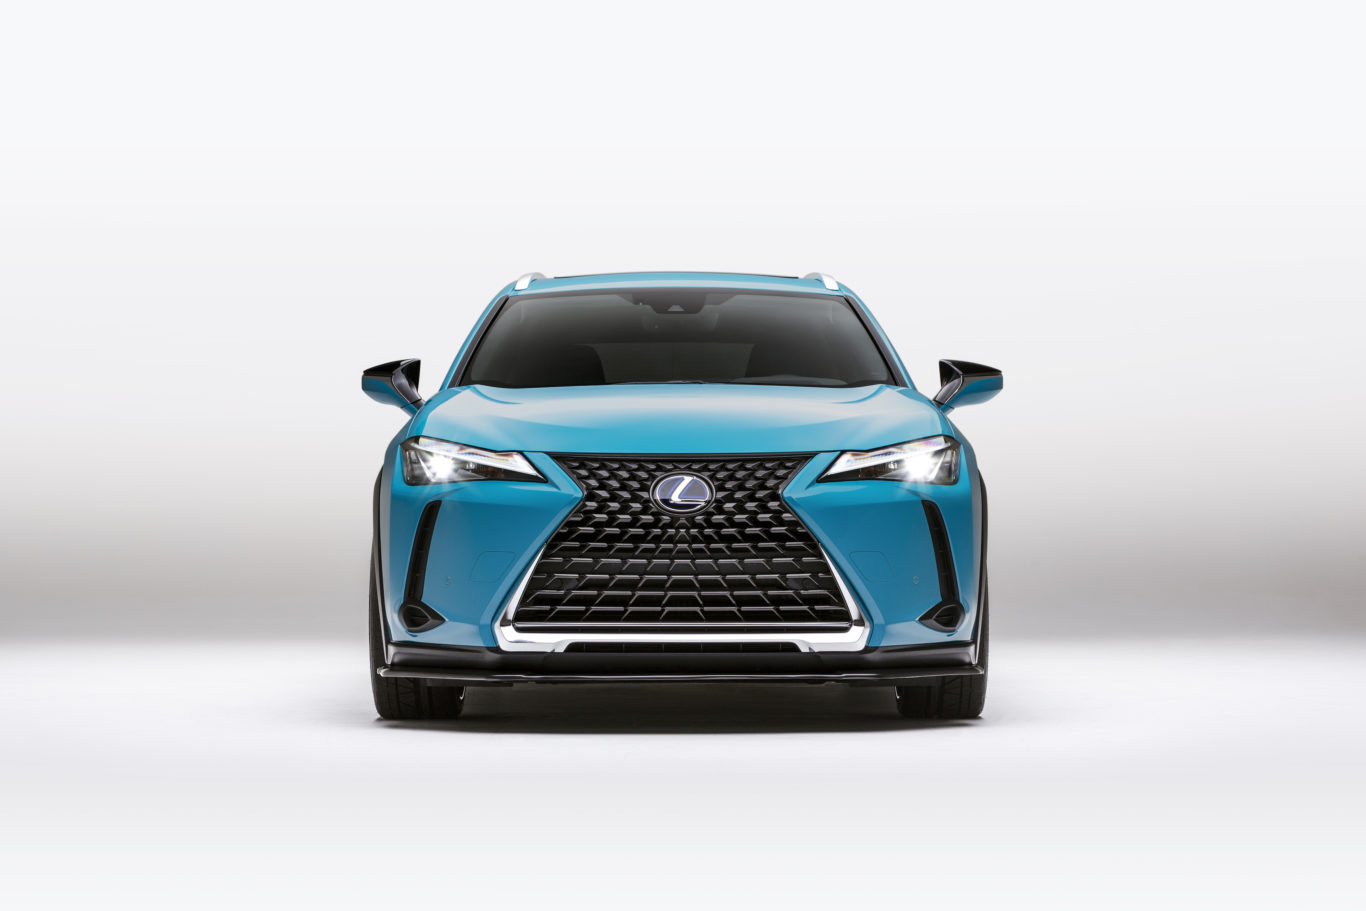 The Lexus UX is another entry into the crossover segment